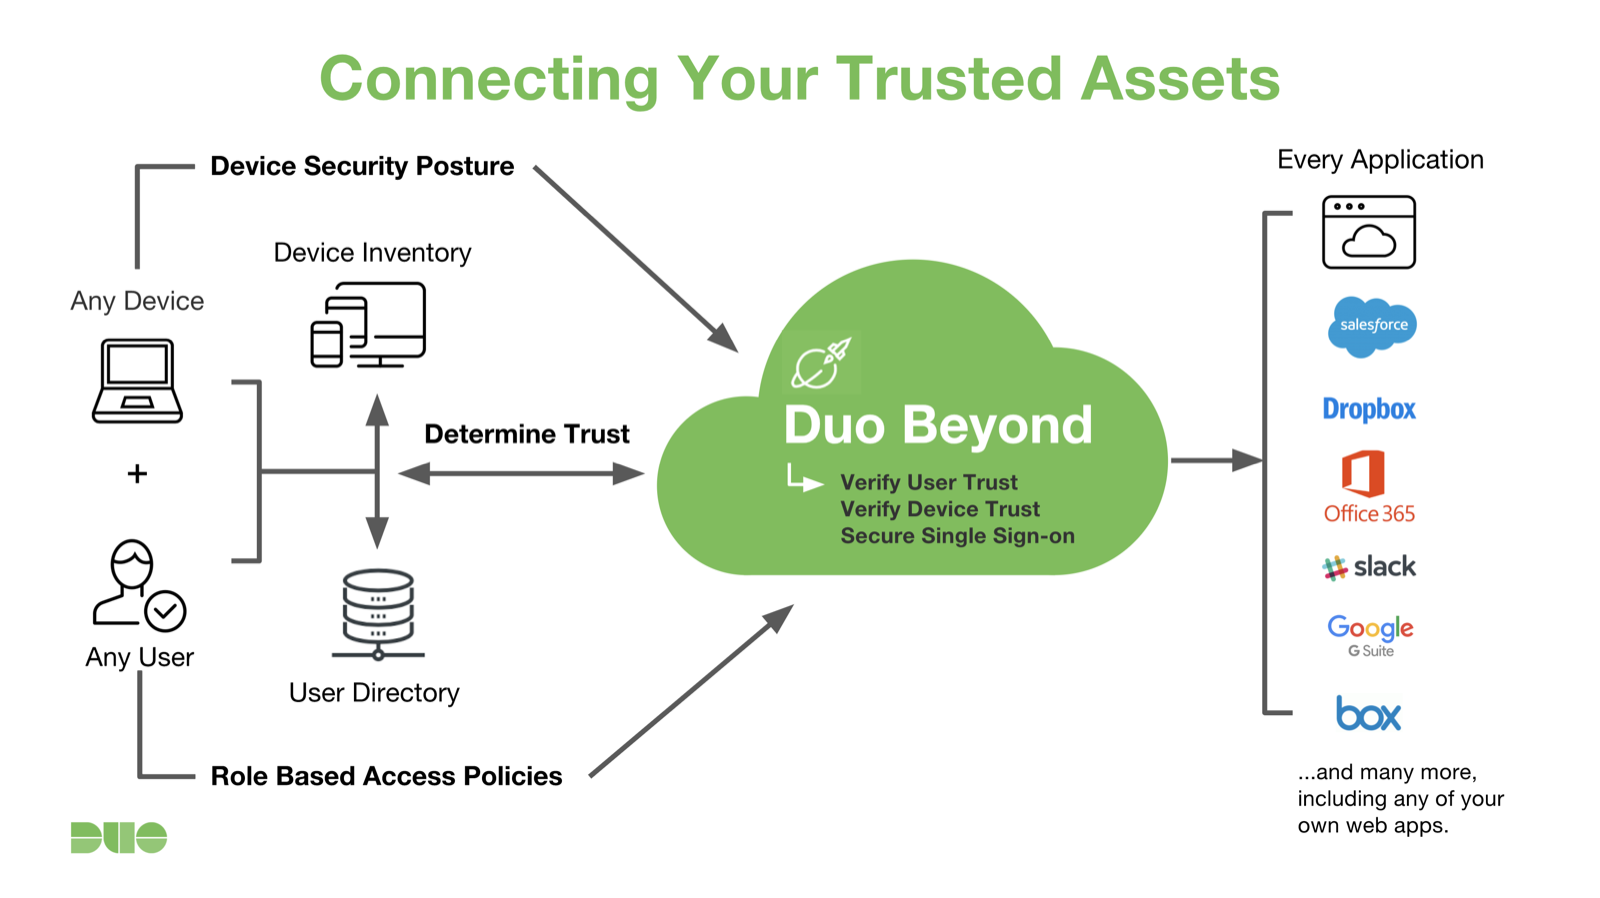 Duo Beyond Trusted Assets